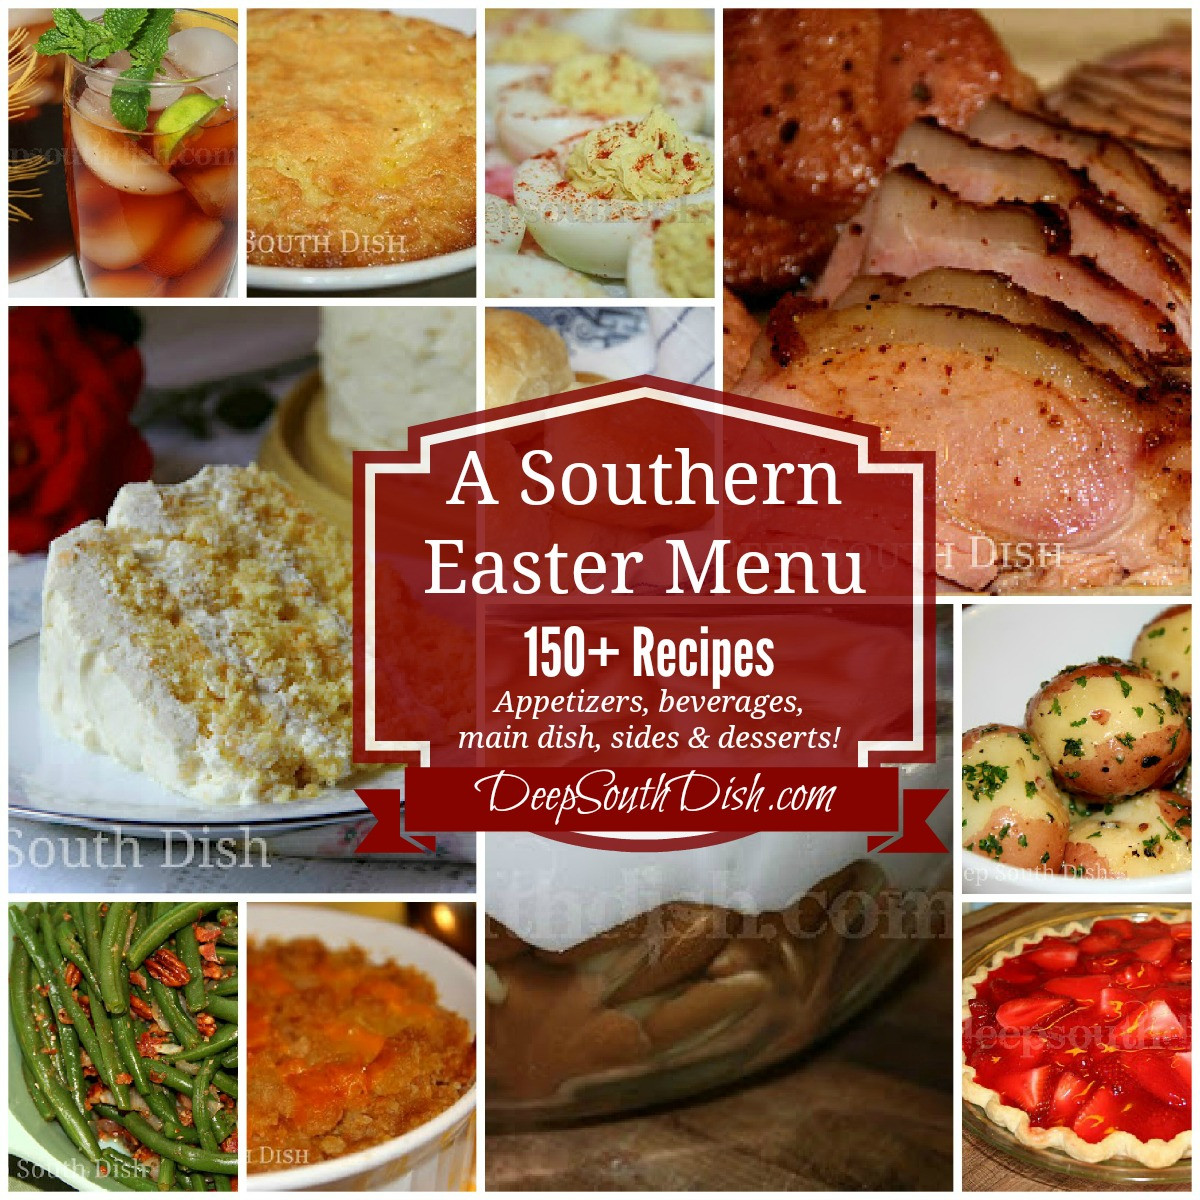 Easter Dinners Menu  Deep South Dish Southern Easter Menu Ideas and Recipes